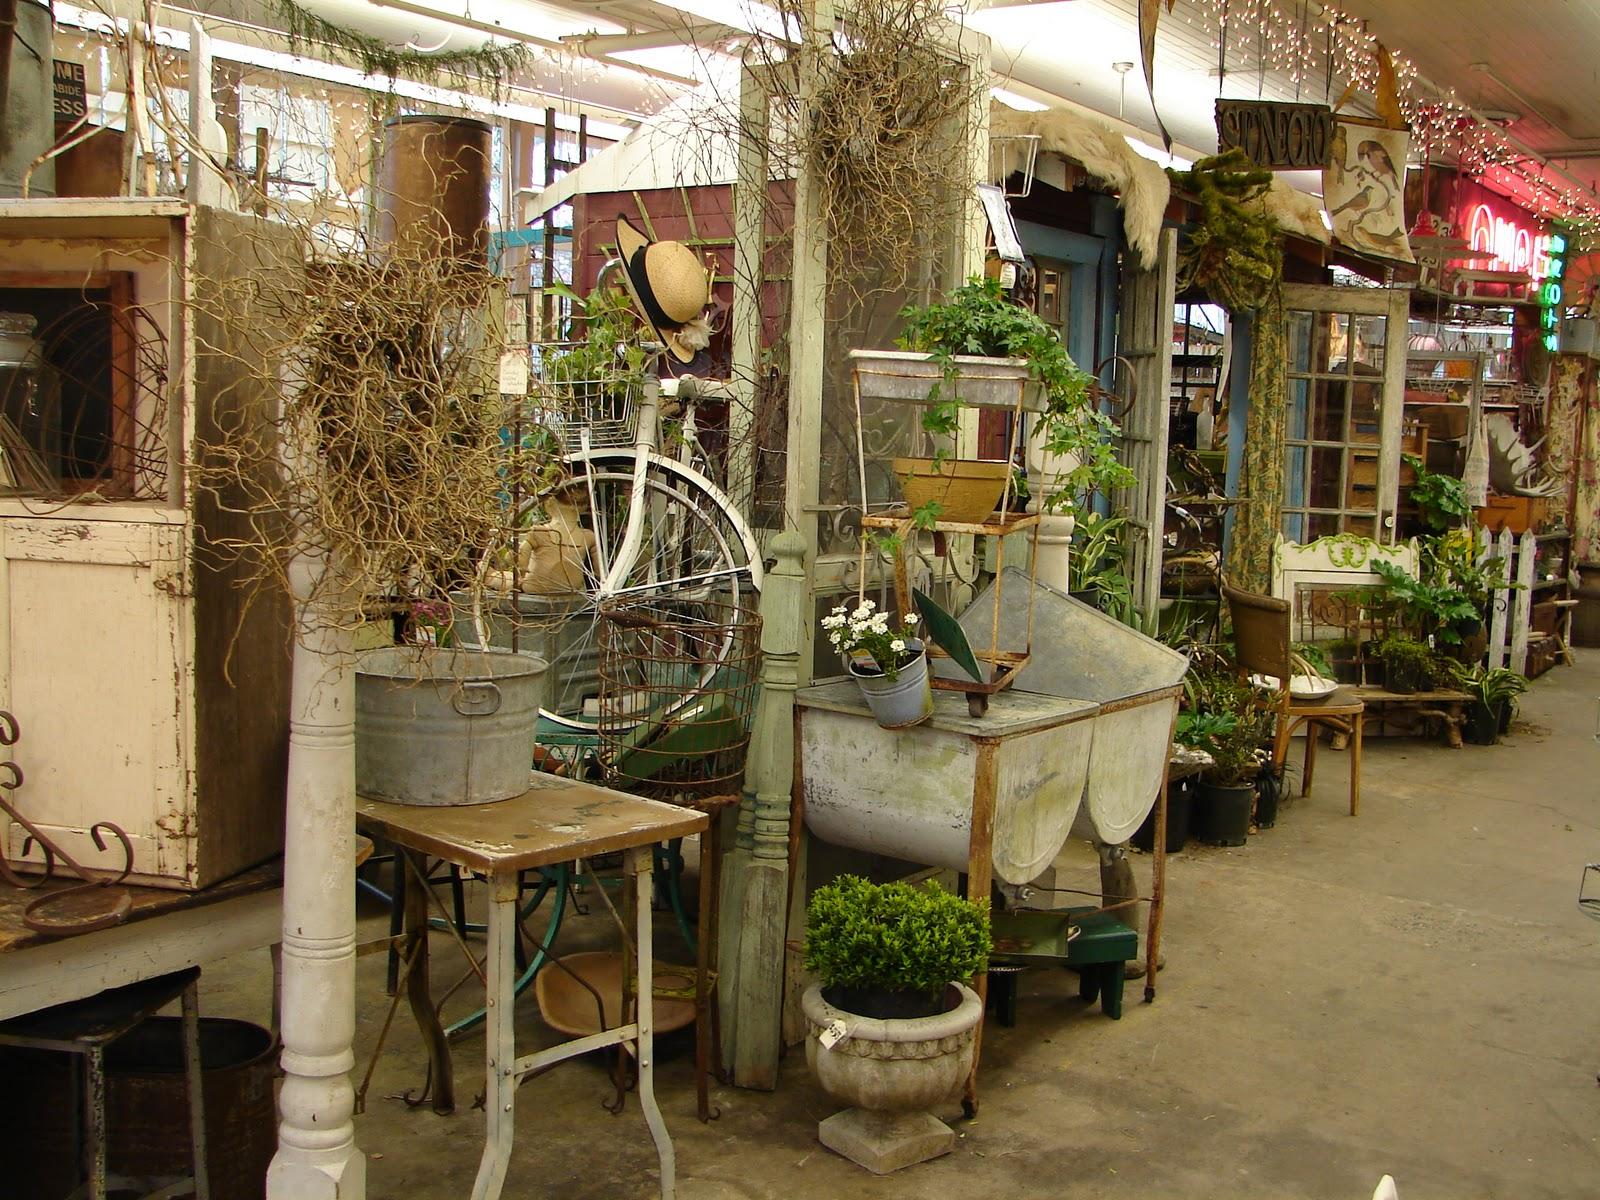 Monticello antique marketplace garden show sneeky peeks for Decor vendors